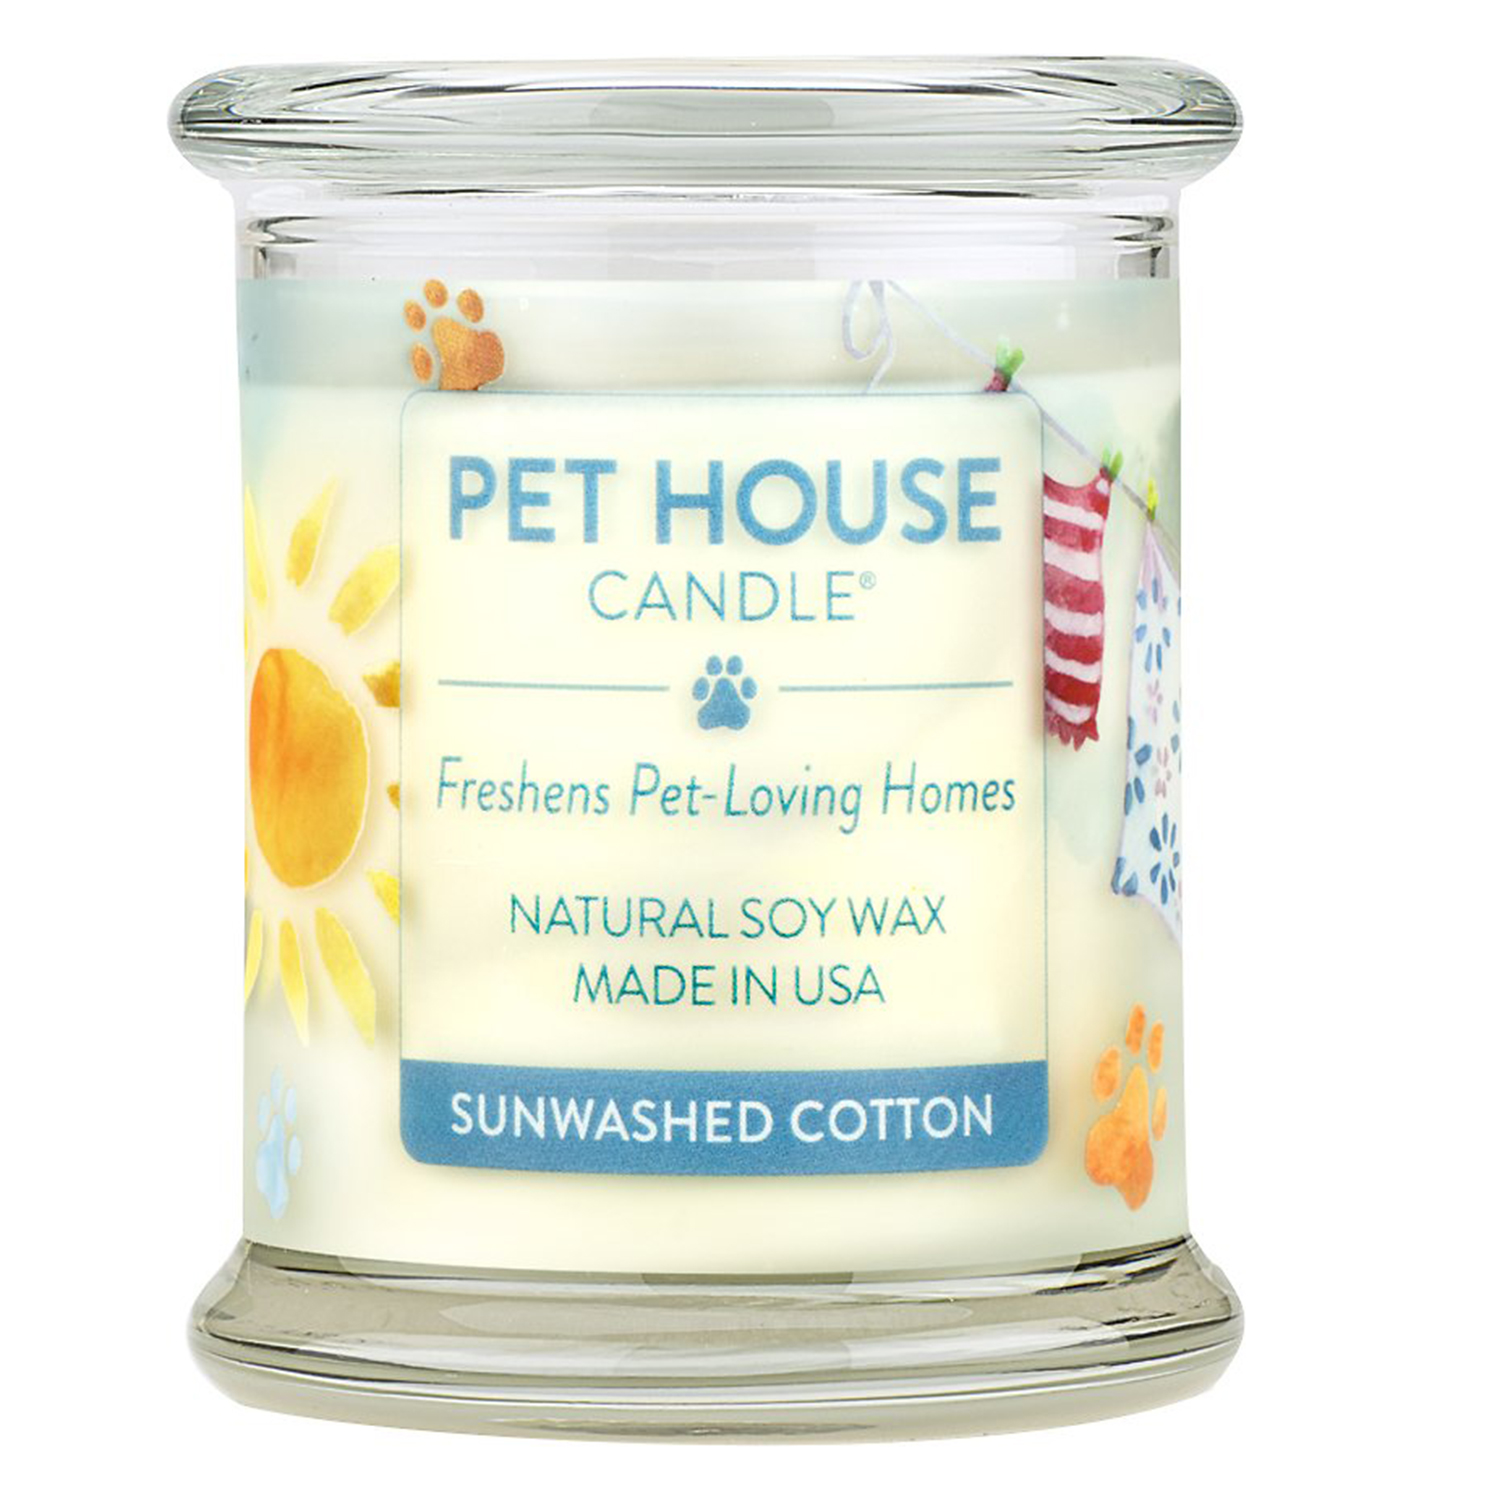 Pet House Sunwashed Cotton Natural Soy Candle